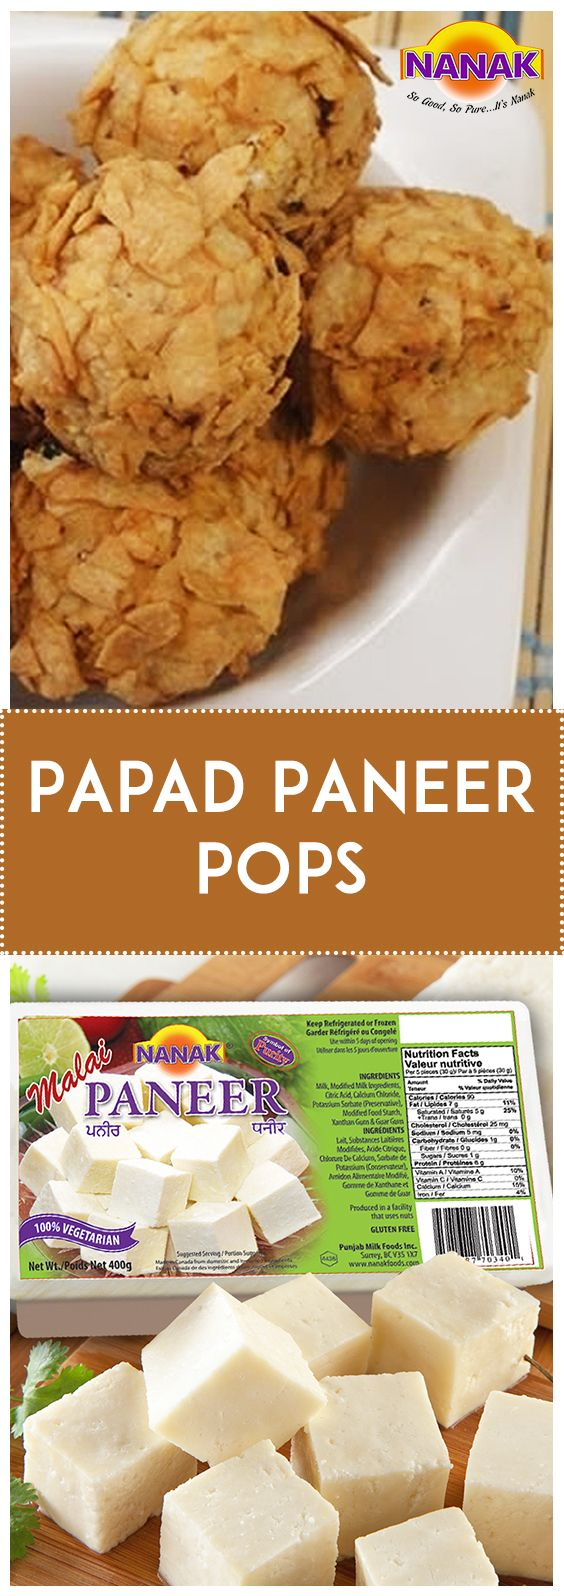 Relish paneer pops crusted with crispy papad that can be made within minutes with this easy recipe. #Yummy #Snack #Delicious #Holiday #Season   Crushed raw papad - 1 1/2 cups Paneer (cottage cheese) – grated 1 cup Chaat masala - 1 teaspoon Red chili powder - 1/2 teaspoon Salt - to taste Fresh coriander leaves chopped - 1 tablespoon Fresh mint leaves chopped - 1 tablespoon Refined flour (Maida) - 5 tablespoons Oil - to deep fry